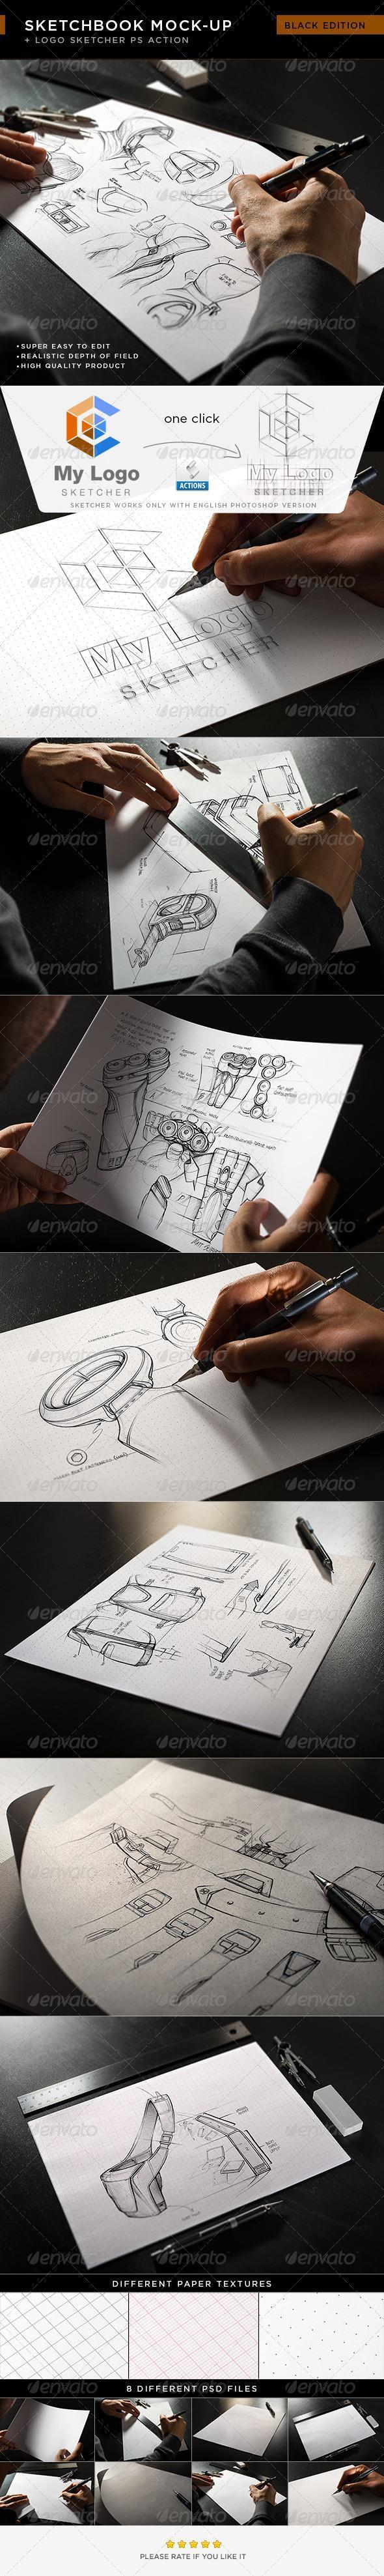 Sketch Mockups with Drawing Hand